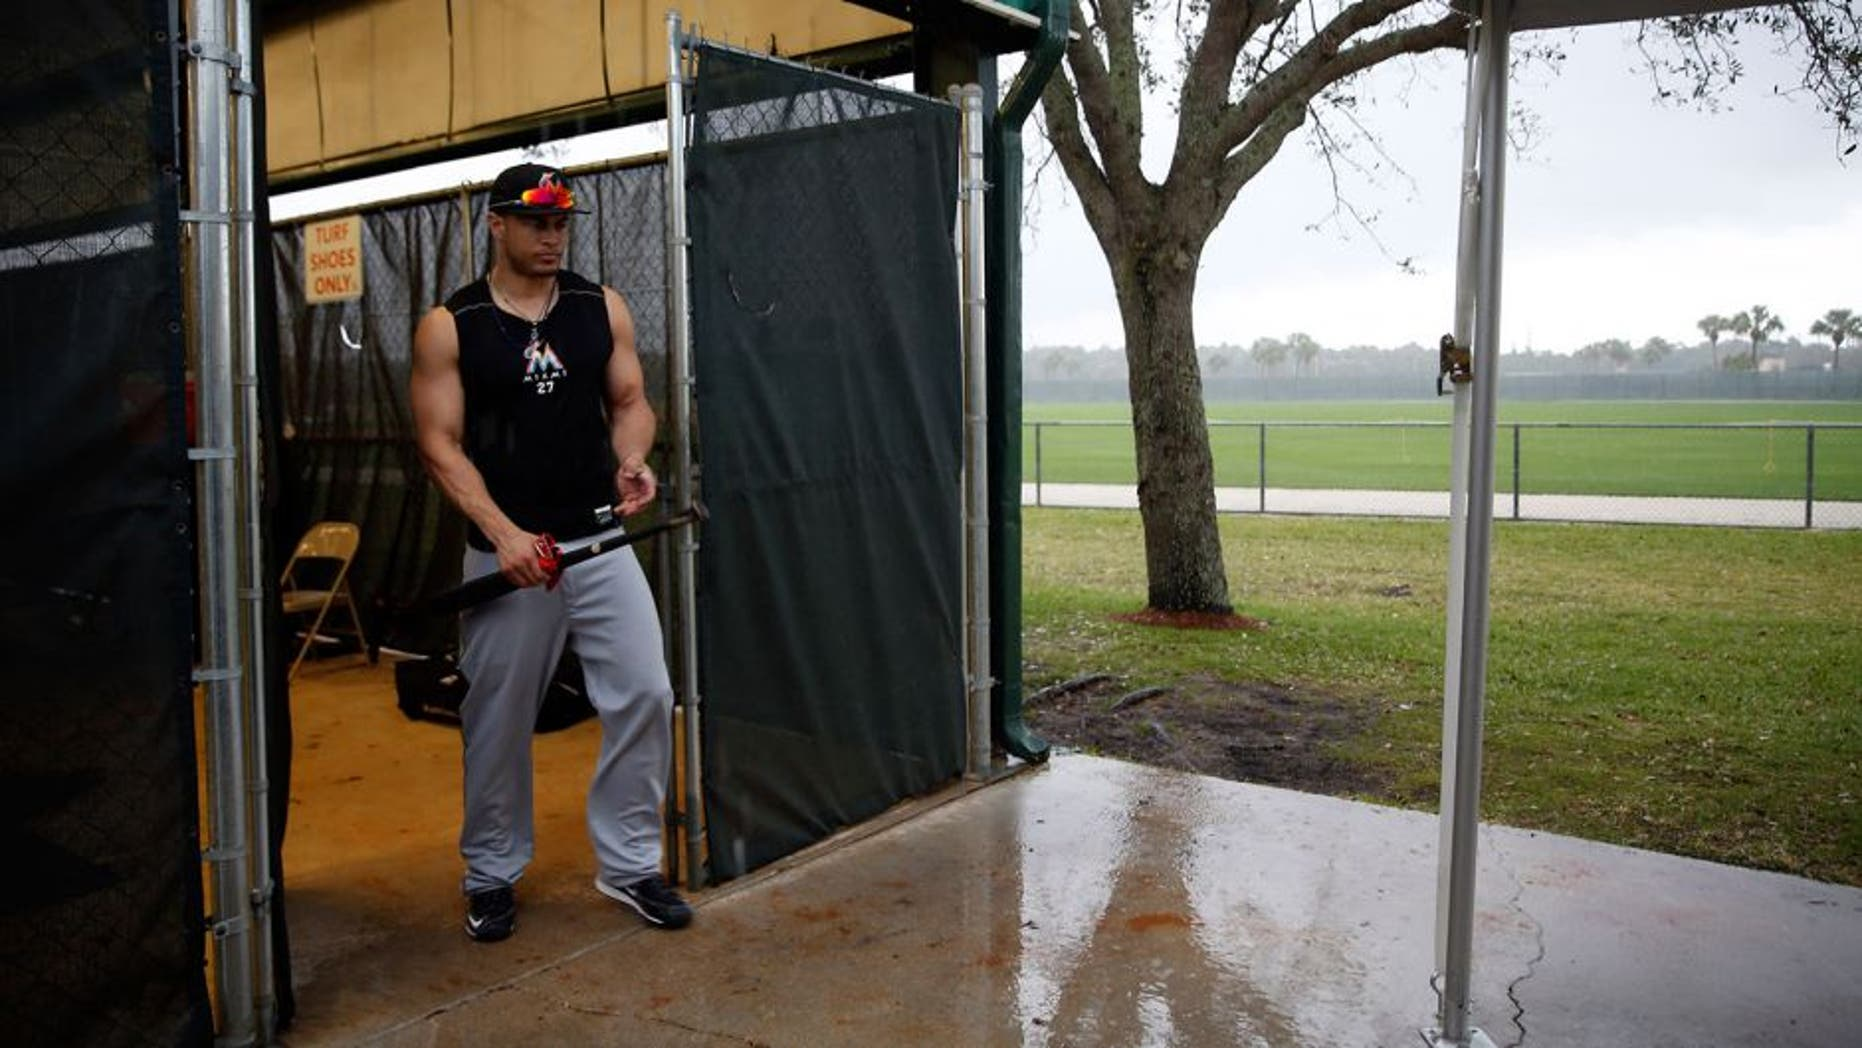 Miami Marlins' Giancarlo Stanton steps out of a batting cage as a steady rain falls during spring training baseball practice Tuesday, Feb. 23, 2016, in Jupiter, Fla. (AP Photo/Jeff Roberson)